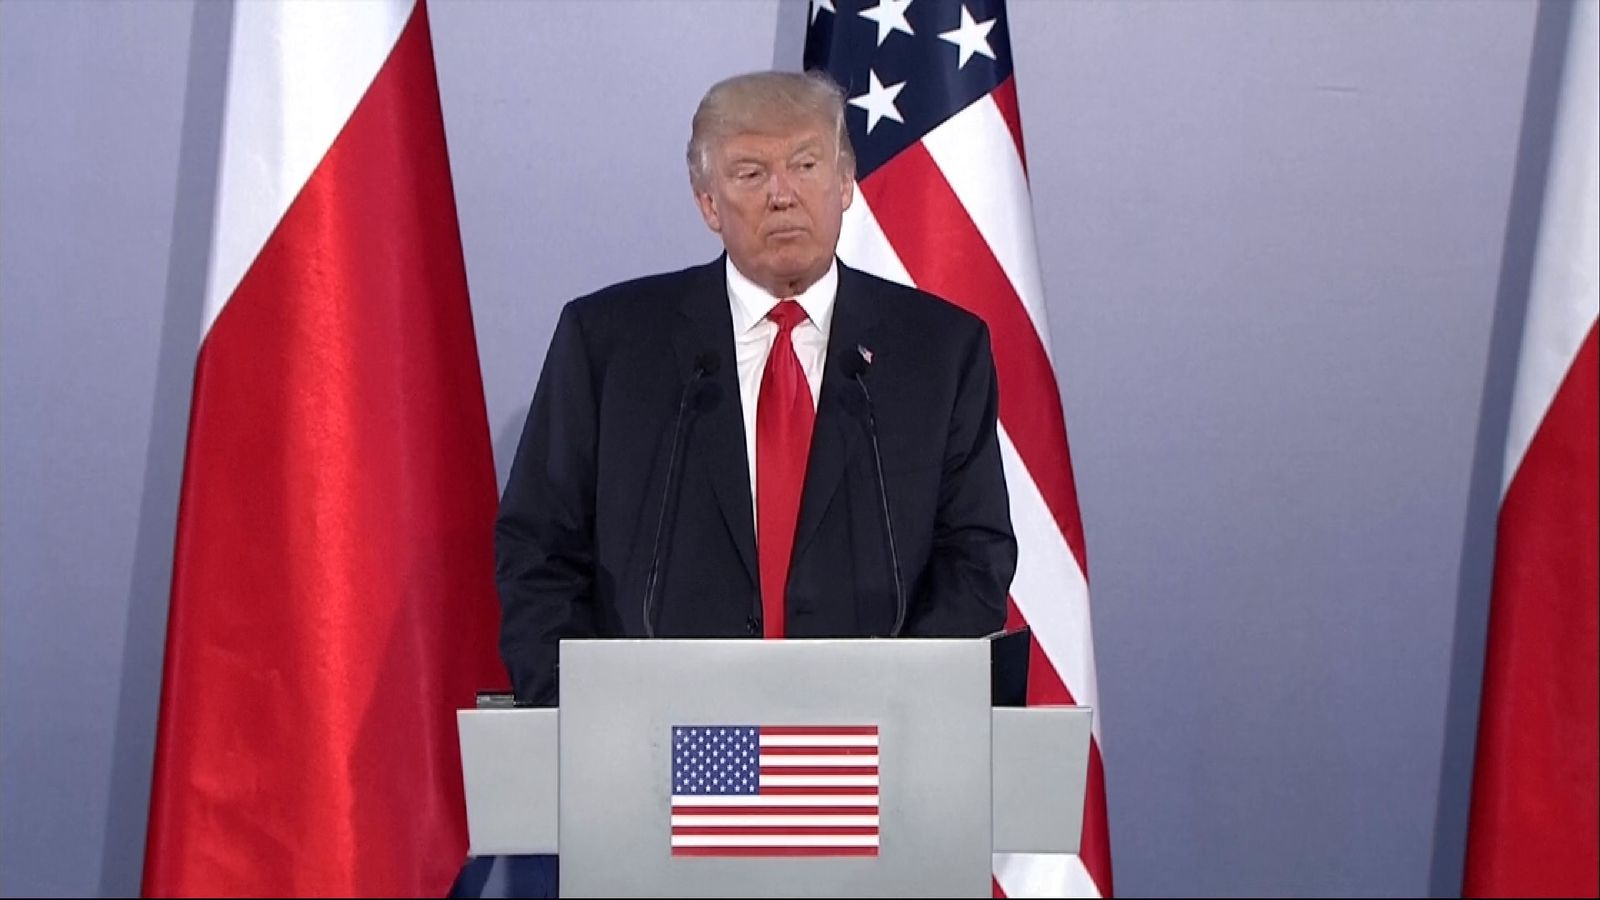 Trump's explosive press conference attacking his enemies in Pyongyang, Moscow and the press.